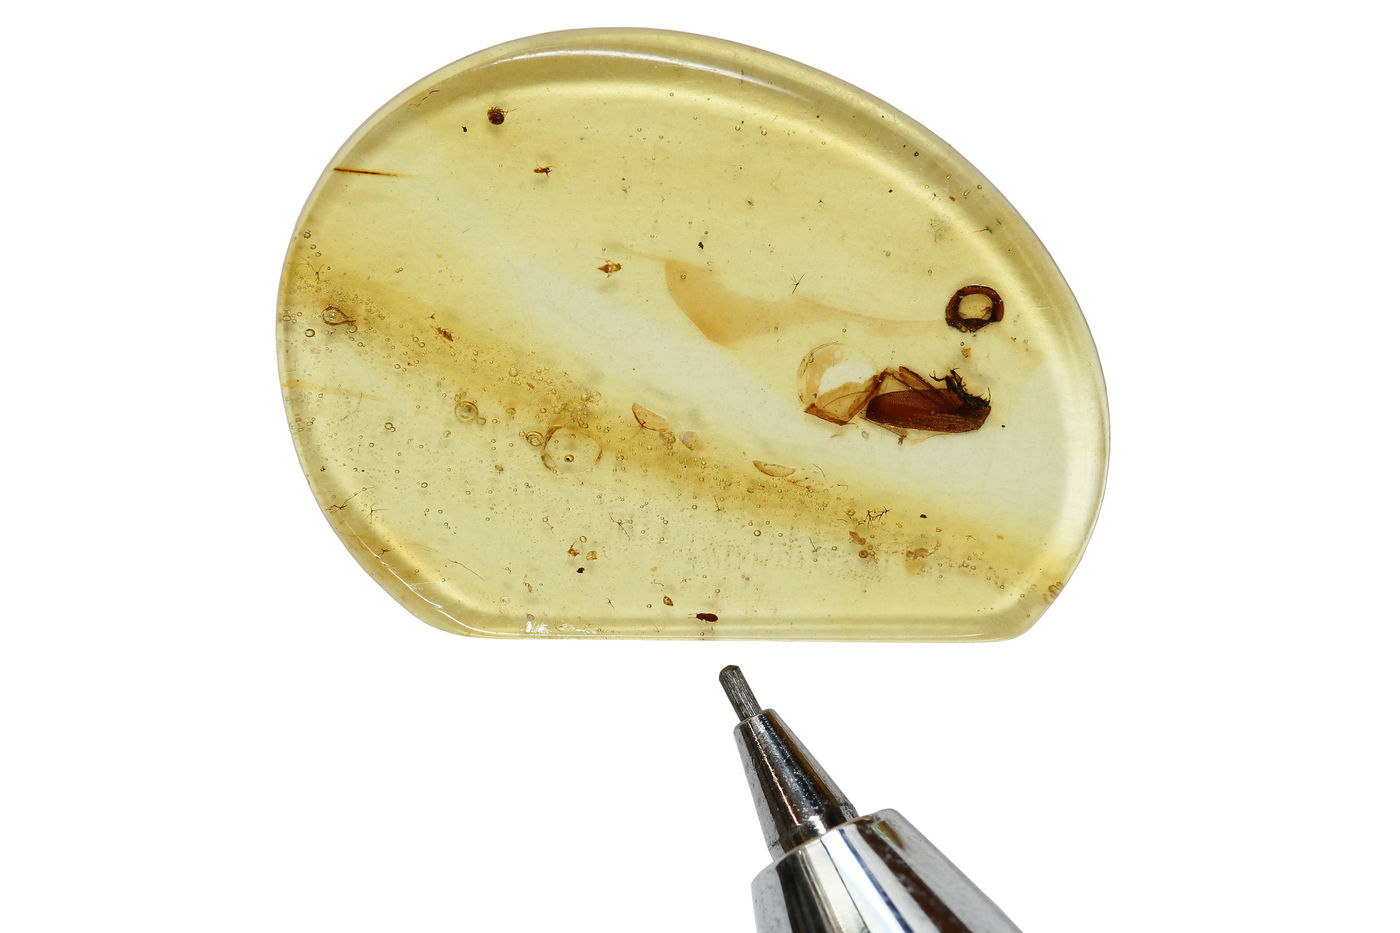 A light yellow piece of amber, mostly oblong with one straight edge, is positioned next to the tip of a mechanical pencil to show the small scale of a beetle that looks like a tiny brown dot. There are streaks and other occlusions in the amber, including a larger brown insect that looks like a cockroach.